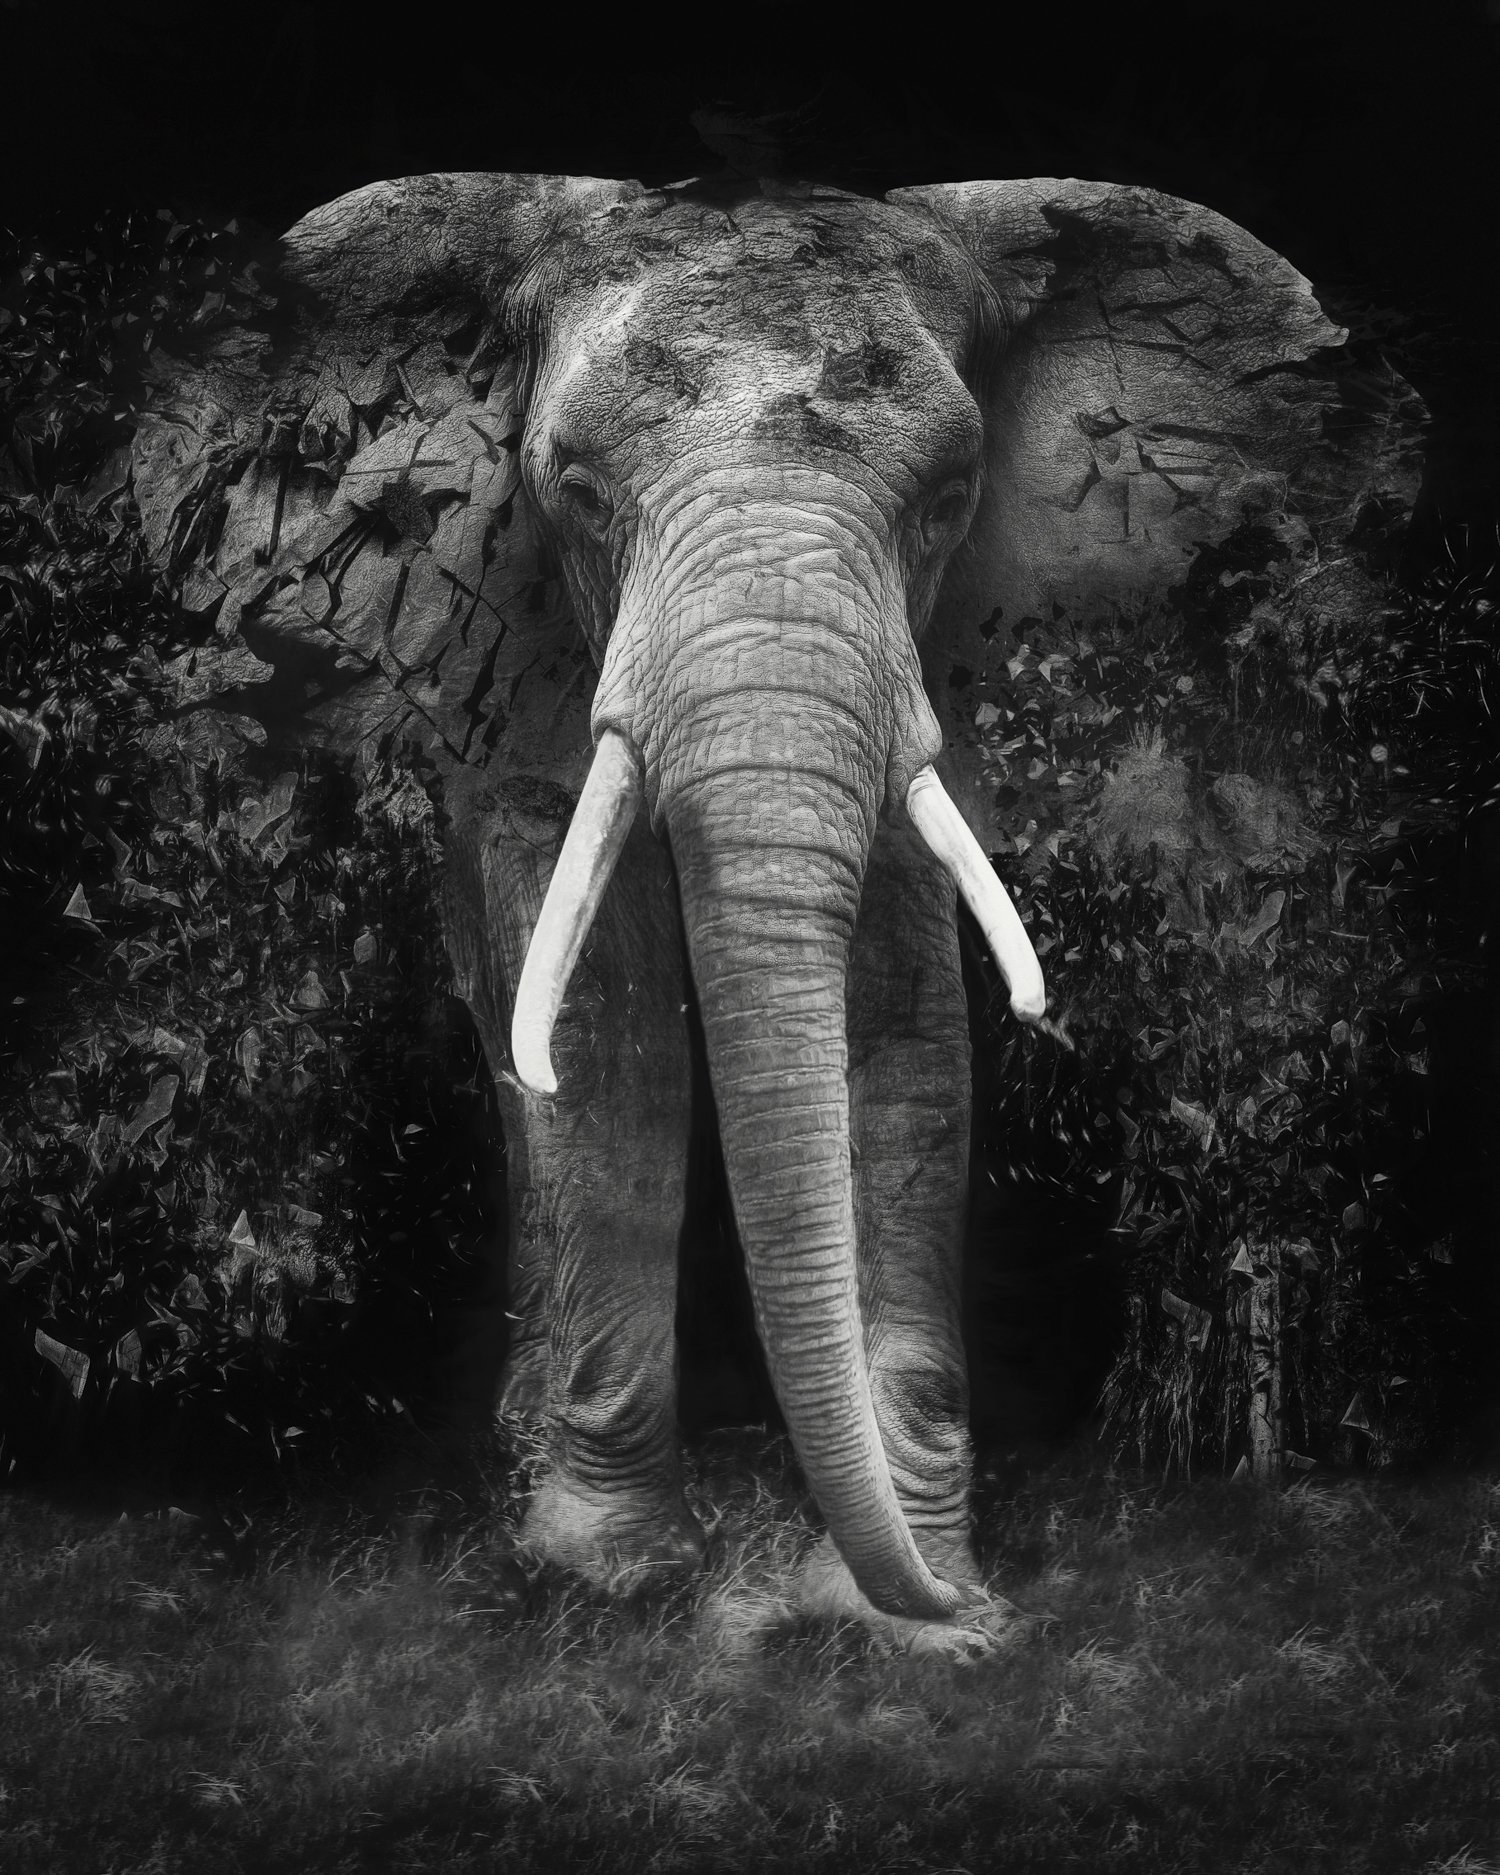 Erik Brede; The Disappearance , 2019, Original Photography Black and White, 40 x 50 cm. Artwork description: 241 New Exclusive 45 format edition for maximum impact. 40x50cm50x60cm Pigment Print on HahnemA1/4hle Fine Art Baryta in a limited edition of 25 + 1AP. ...